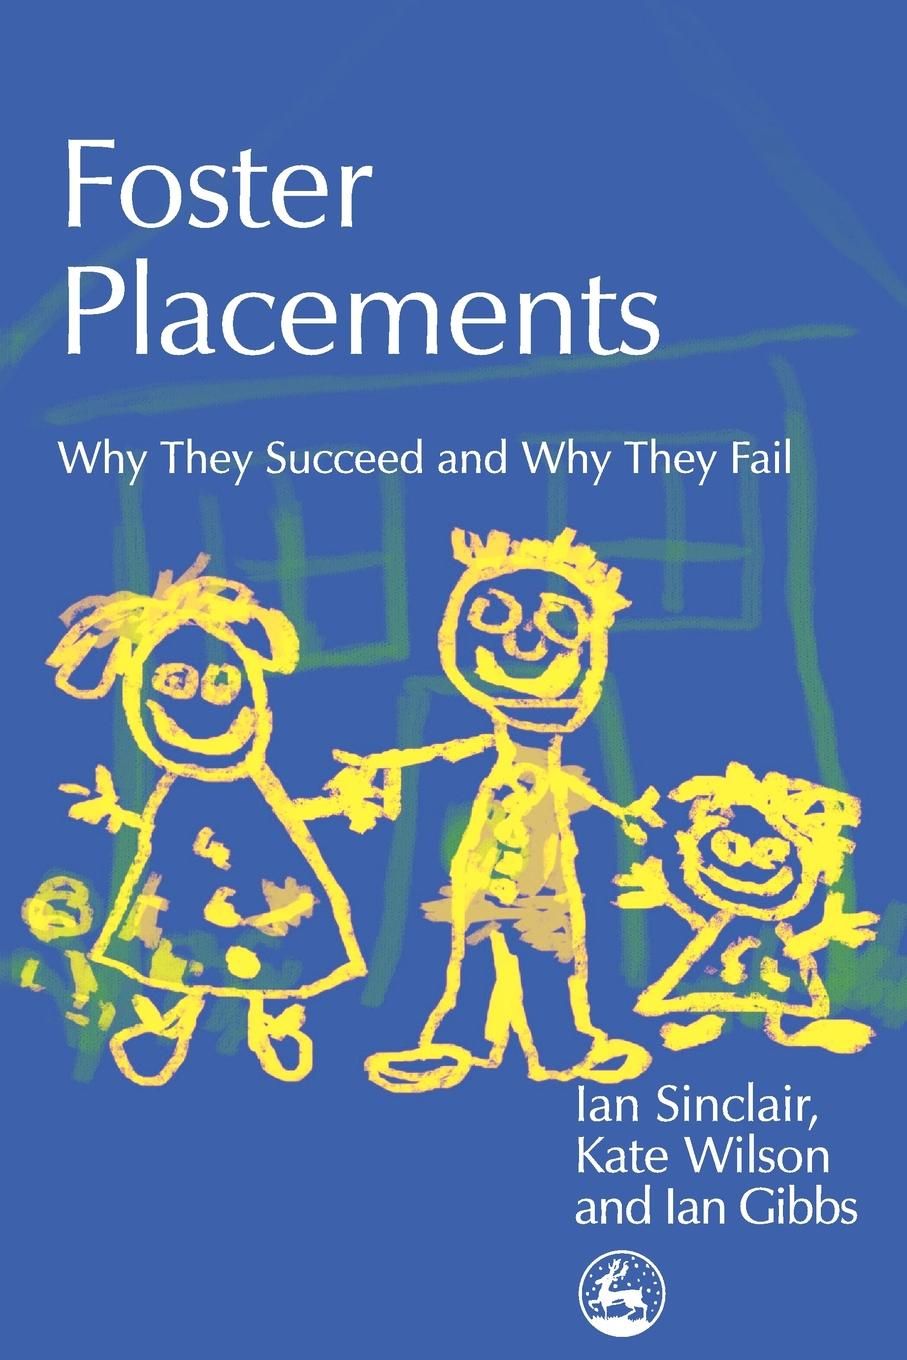 Ian Sinclair, Ian Gibbs, Kate Wilson Foster Placements. Why They Succeed and Why They Fail tina r erfolgsfaktoren des product placements in kinospielfilmen